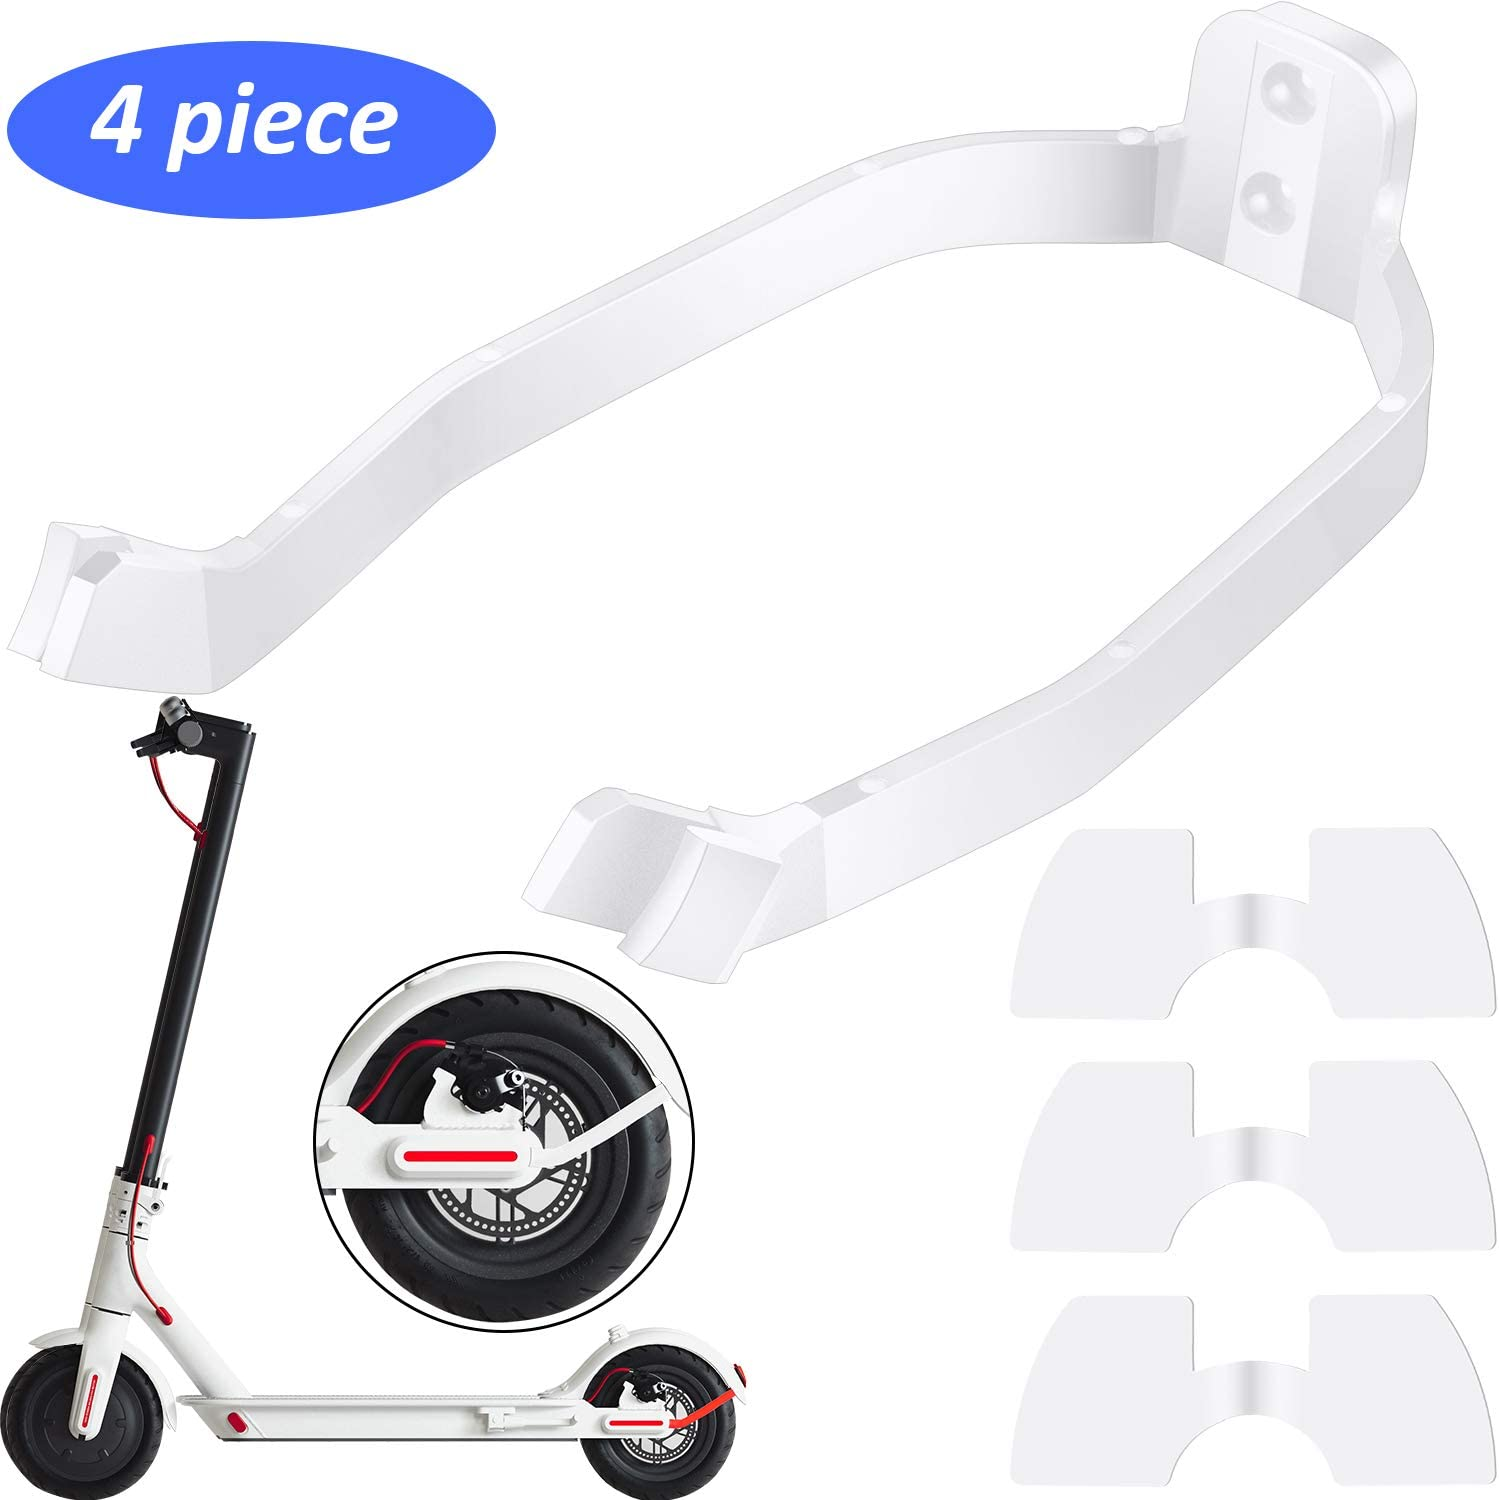 Rear Fender Bracket Mudguard Bracket and 3 Pieces Rubber Vibration Dampers for Xiaomi M365 Scooter Scooter Replacement Part Accessories 4 Pieces in Total